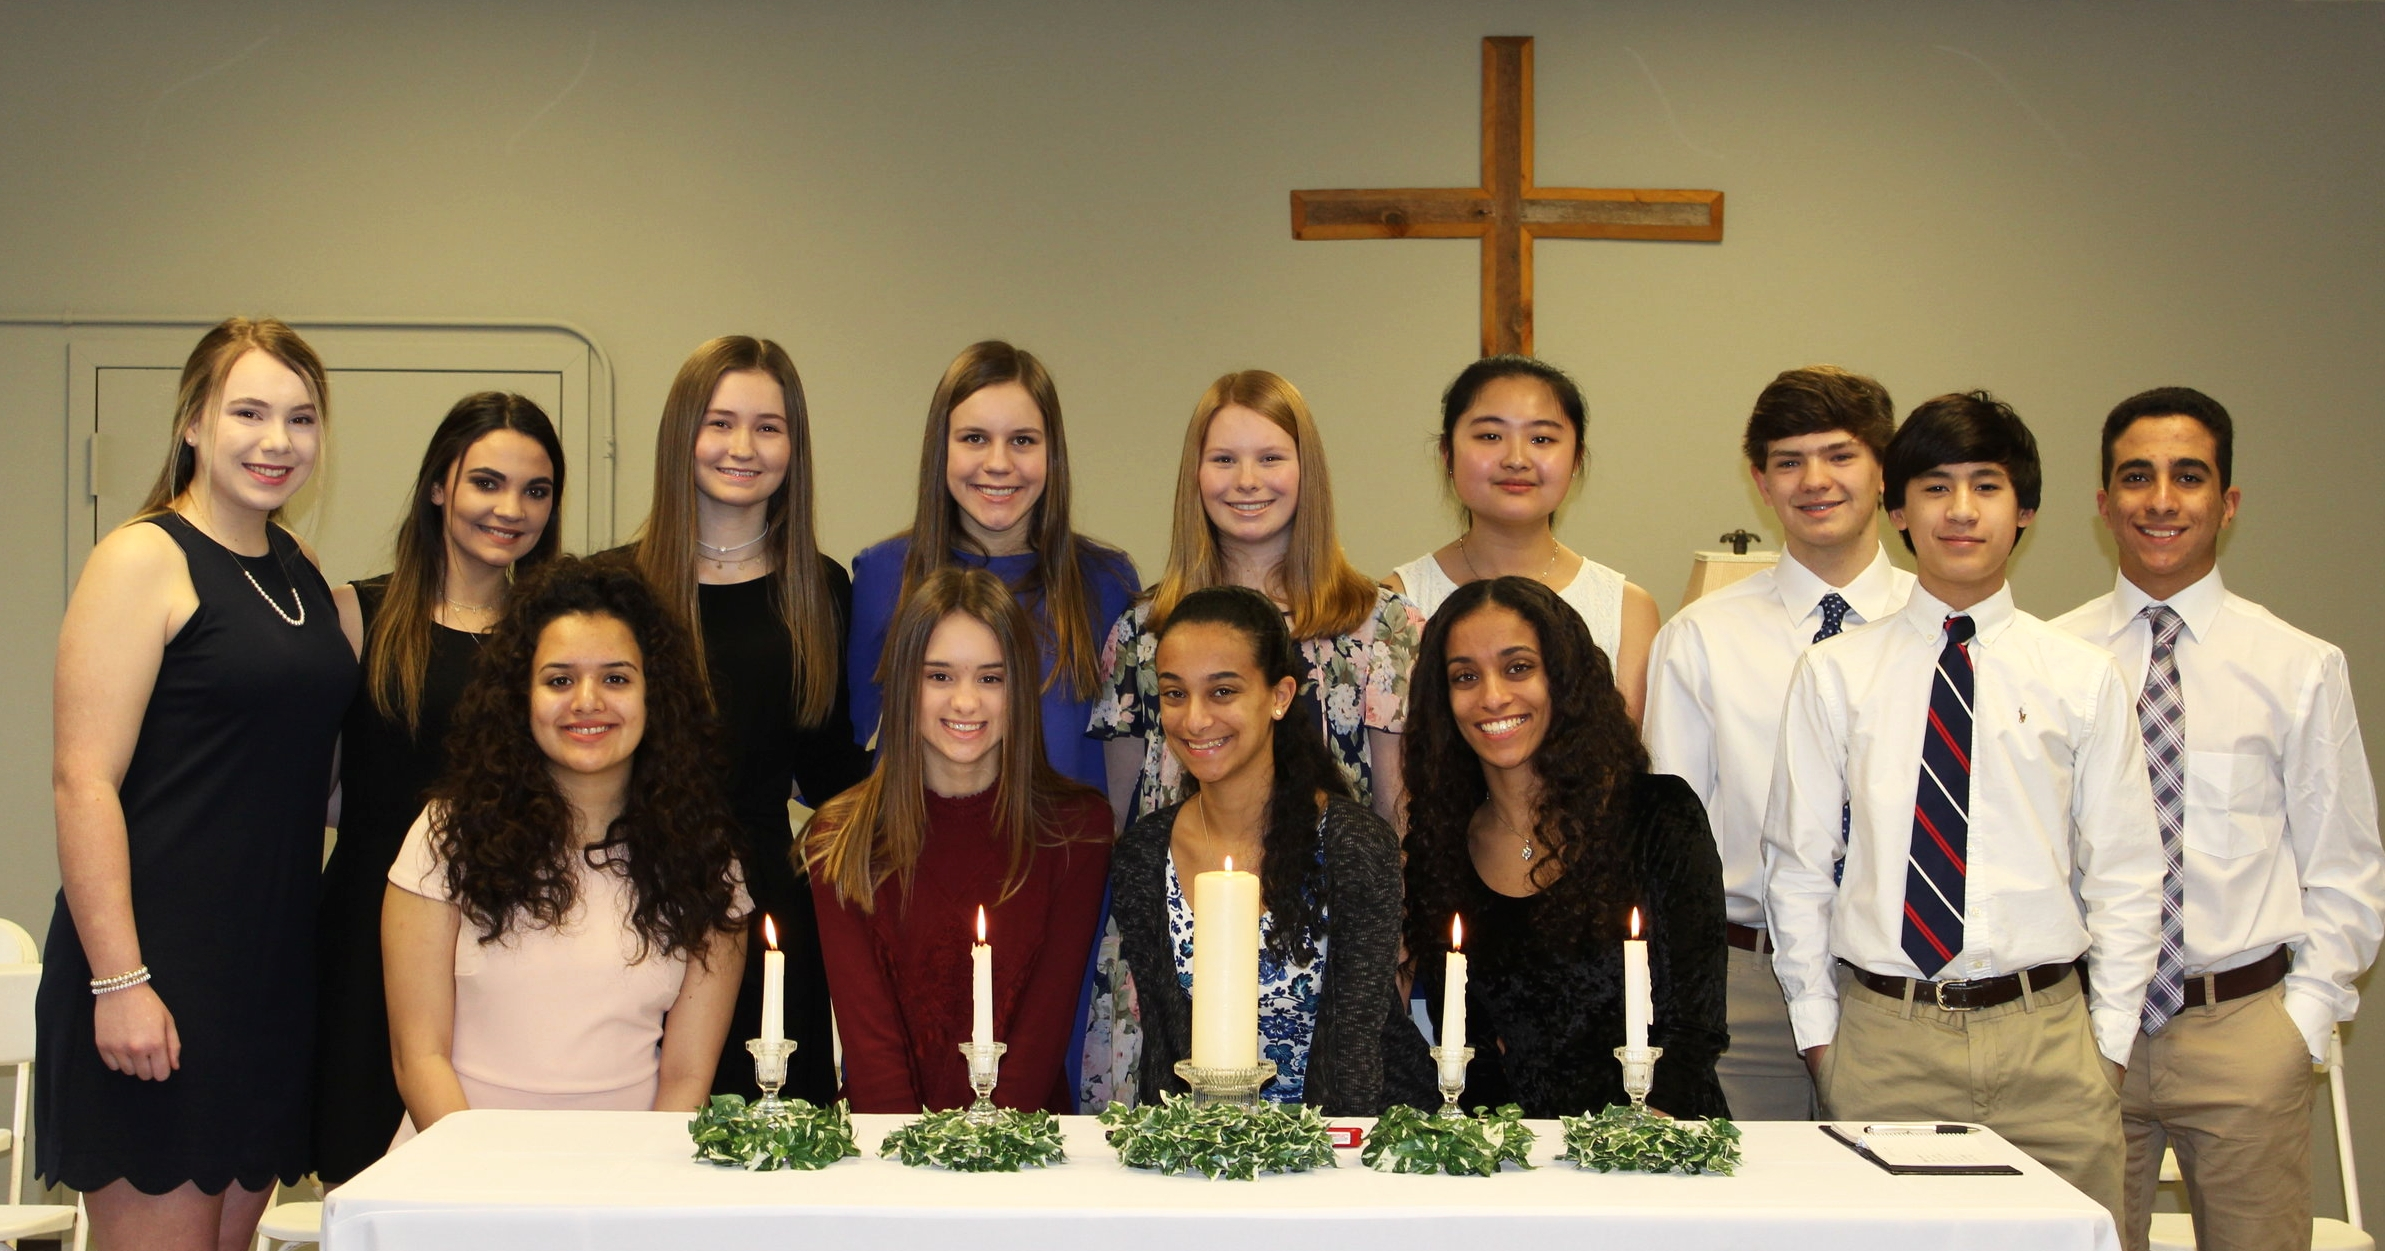 Members of the National Junior Honor Society are pictured above. Merri Evelyn Evans, President; Tate Allen, Vice President; Anne Hollis Dulaney, Officer of Leadership; Sarah Basha, Officer of Scholarship; Elizabeth Basha, Officer of Character; Jackson Spinks, Officer of Service, Gaines Barksdale, Michael Basha, Sandra Chow, Gladys Daniel, Brielle Johnson, Debbie Molina, and Emily Moser